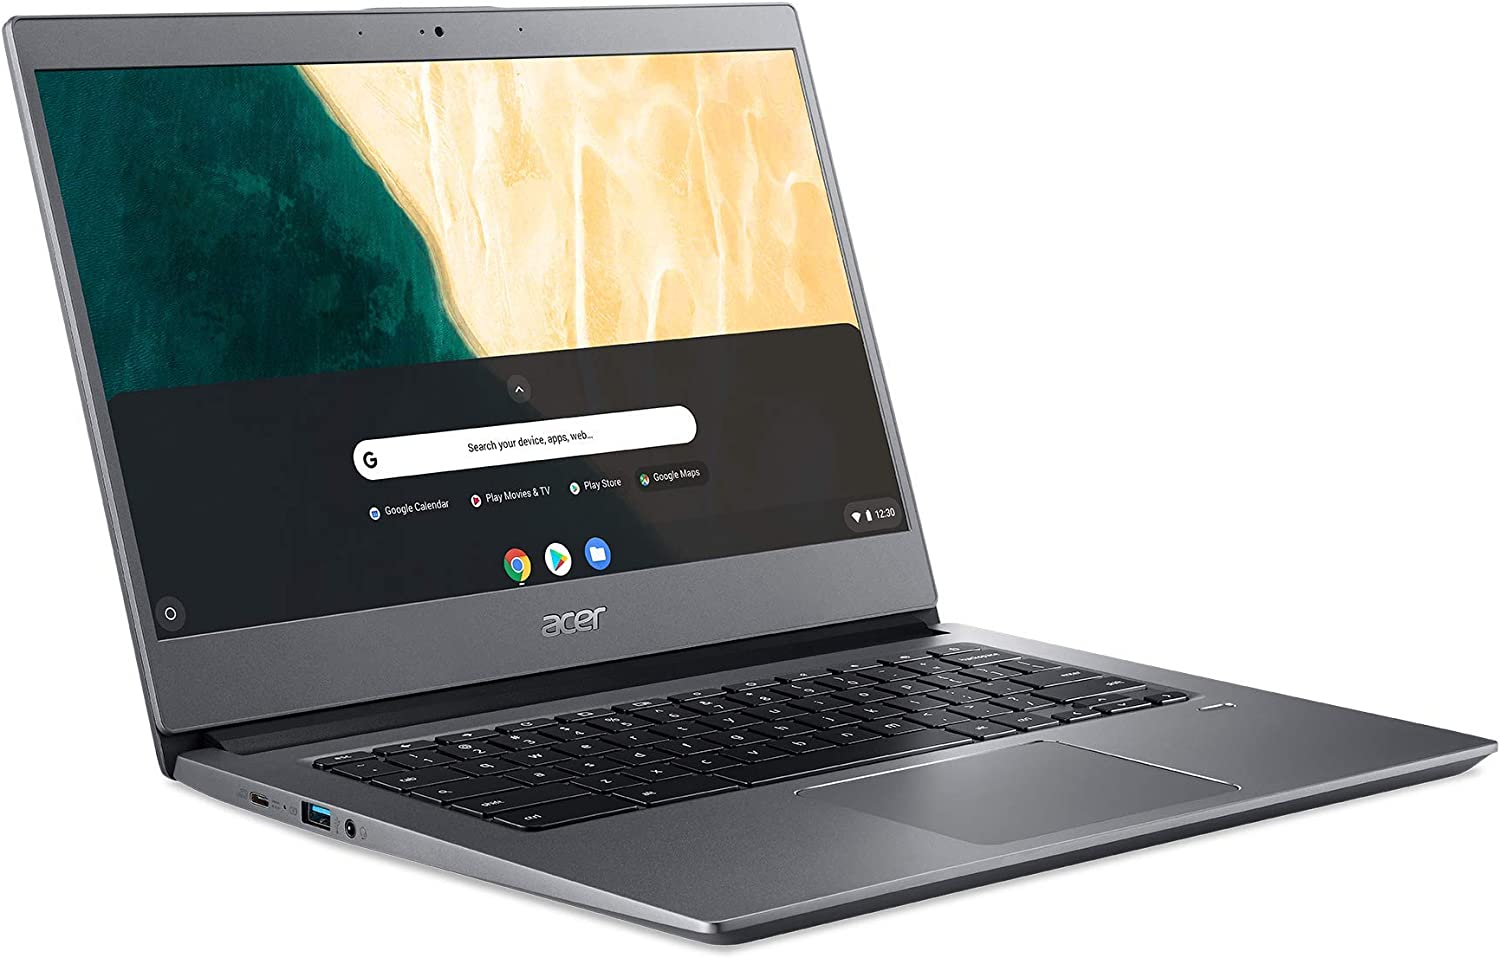 "Acer Chromebook 714, Intel Pentium Gold 4417U, 14.0"" Full HD Display, 8GB DDR4, 64GB eMMC, microSD Card Reader, 802.11ac WiFi 5, Backlit Keyboard, Fingerprint Reader, Chrome OS, CB714-1W-P3CK"